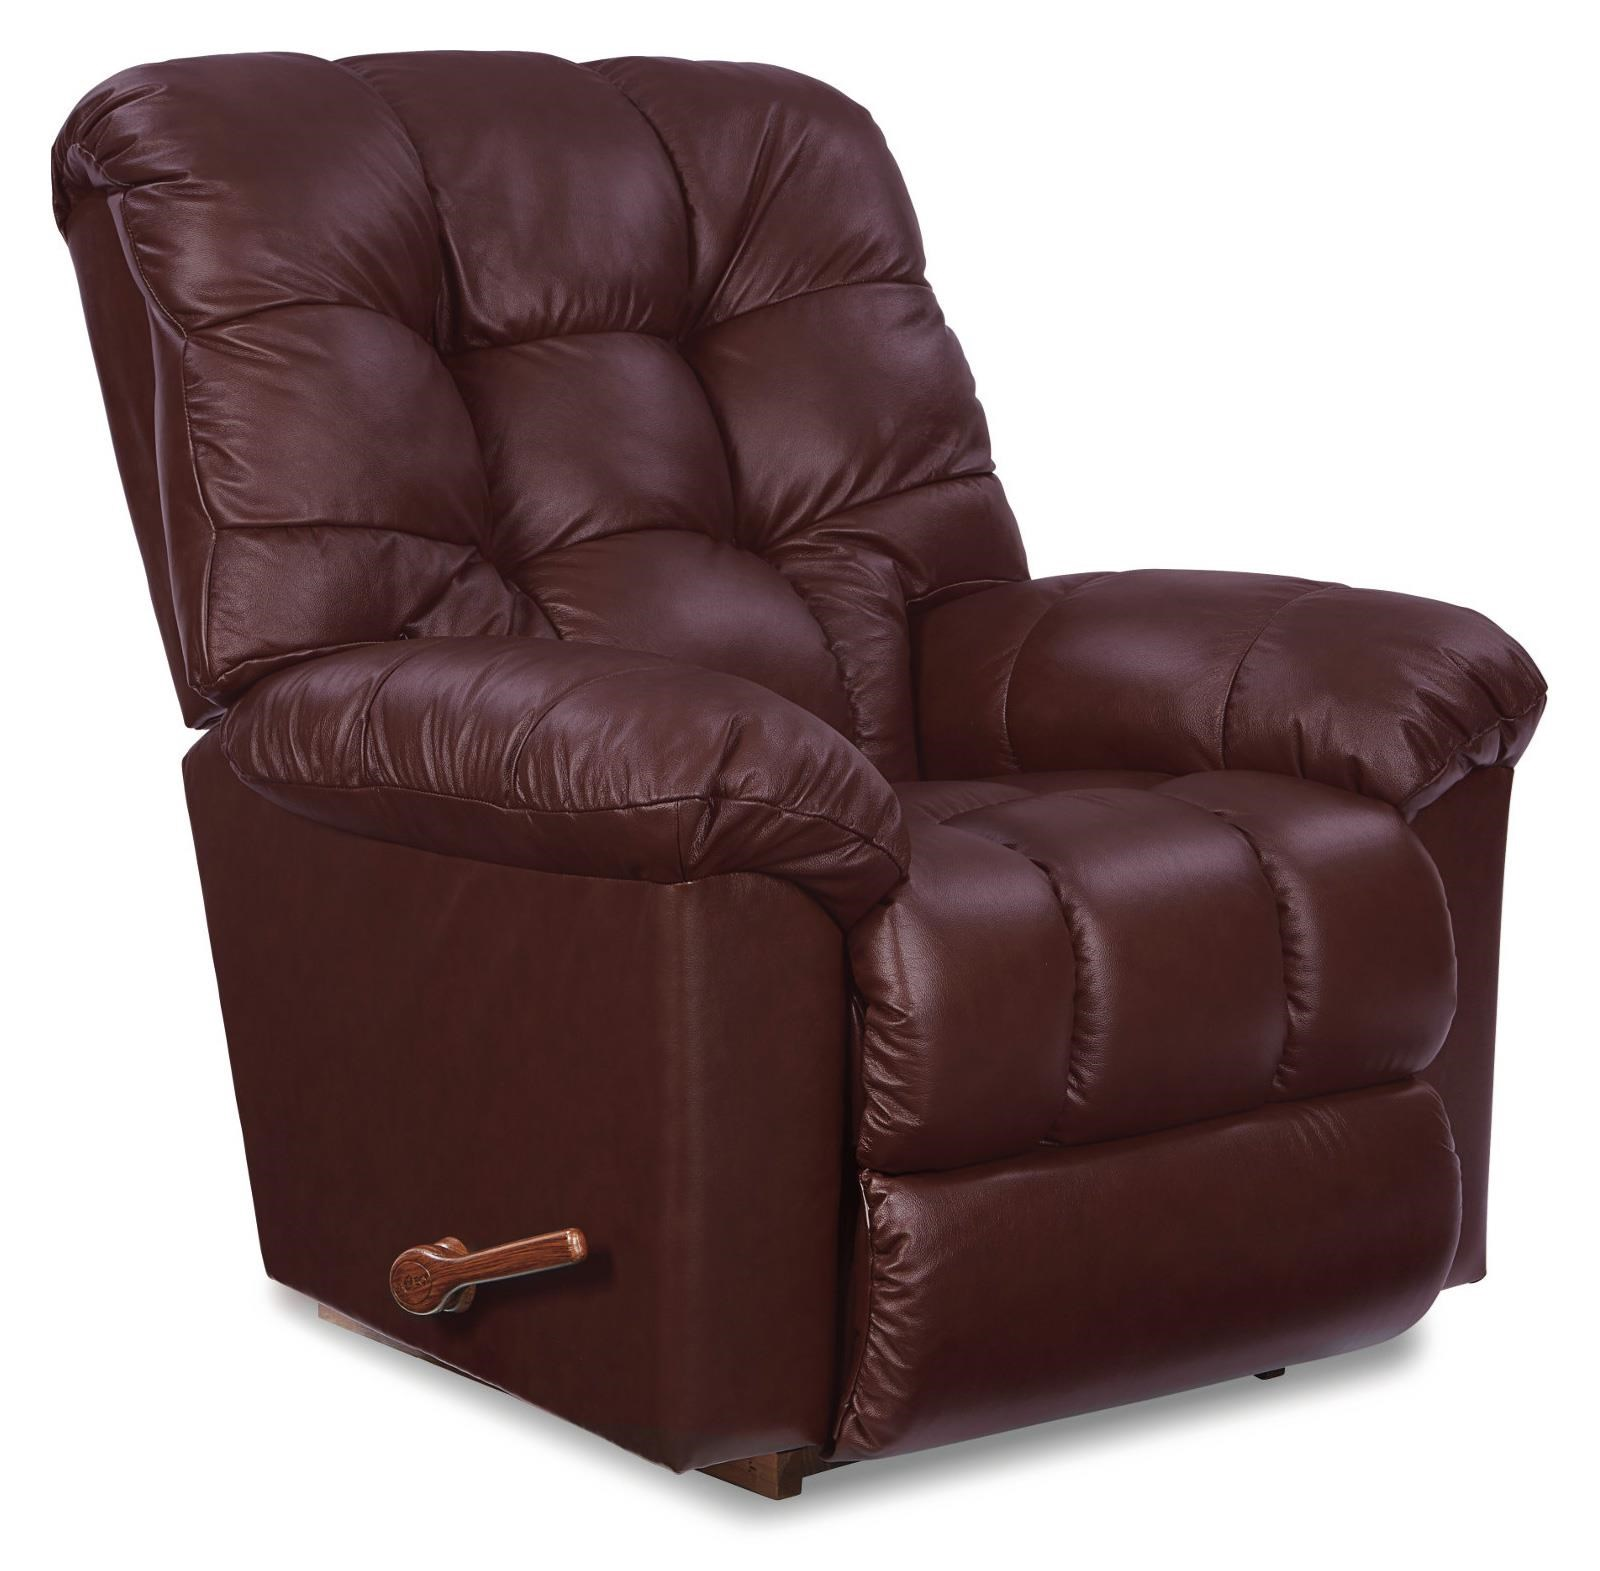 La-Z-Boy Gibson Reclina-Rocker® Reclining Chair - Item Number: 010563-LB143509